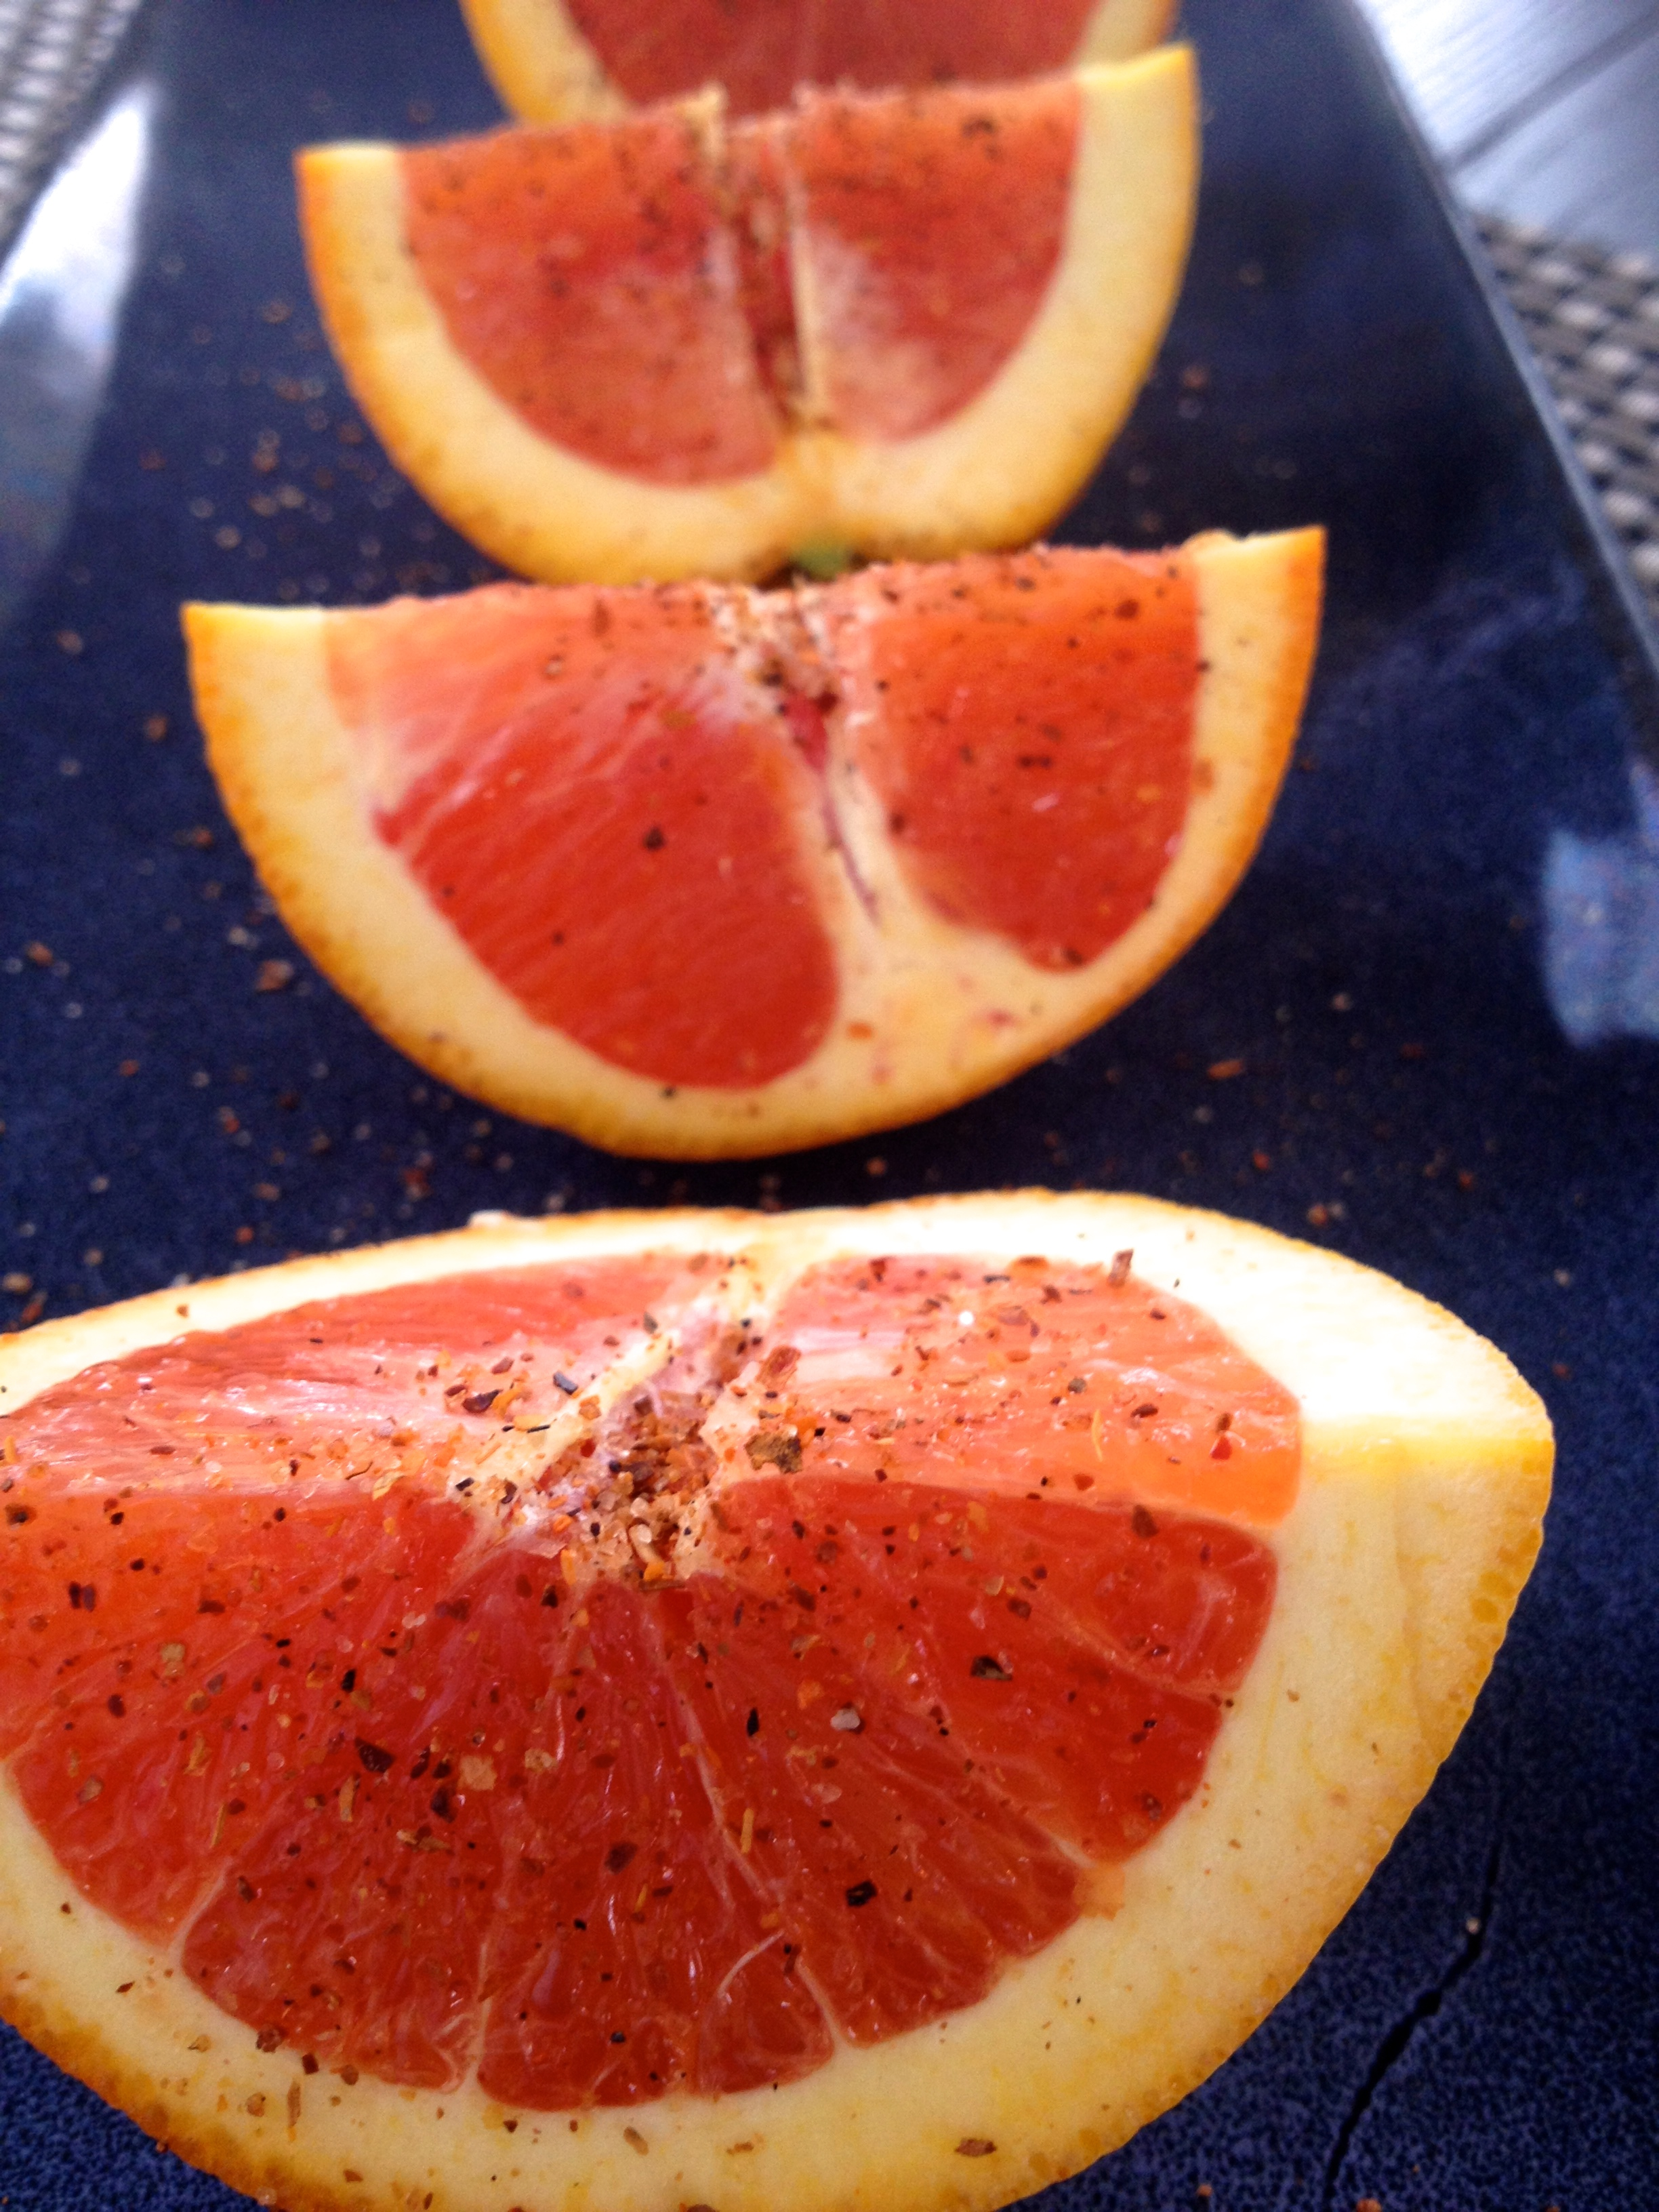 Powder And Chili Fruit Lime Mexican